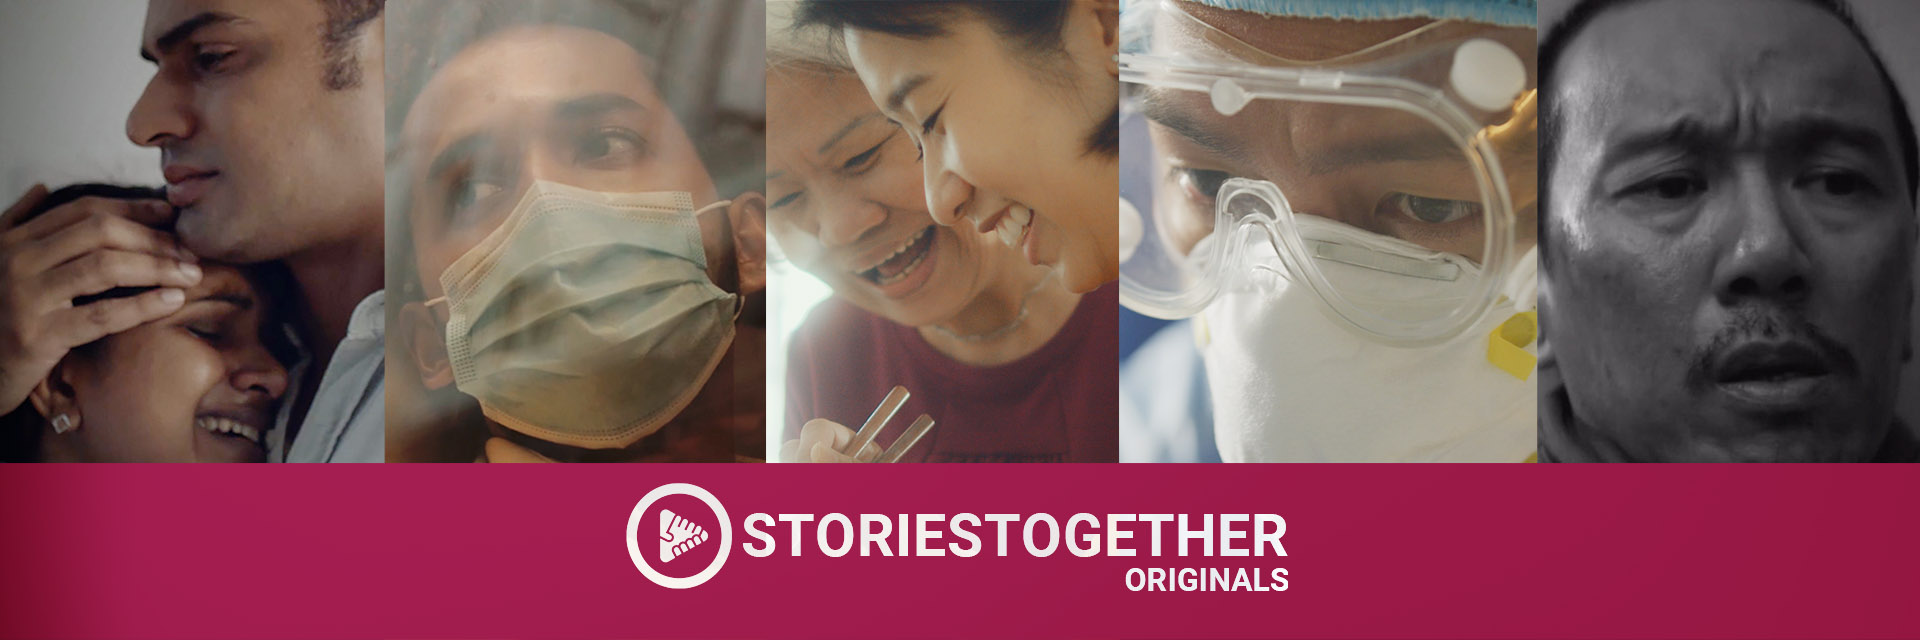 Viddsee rallies support for Community Chest through StoriesTogether original shows